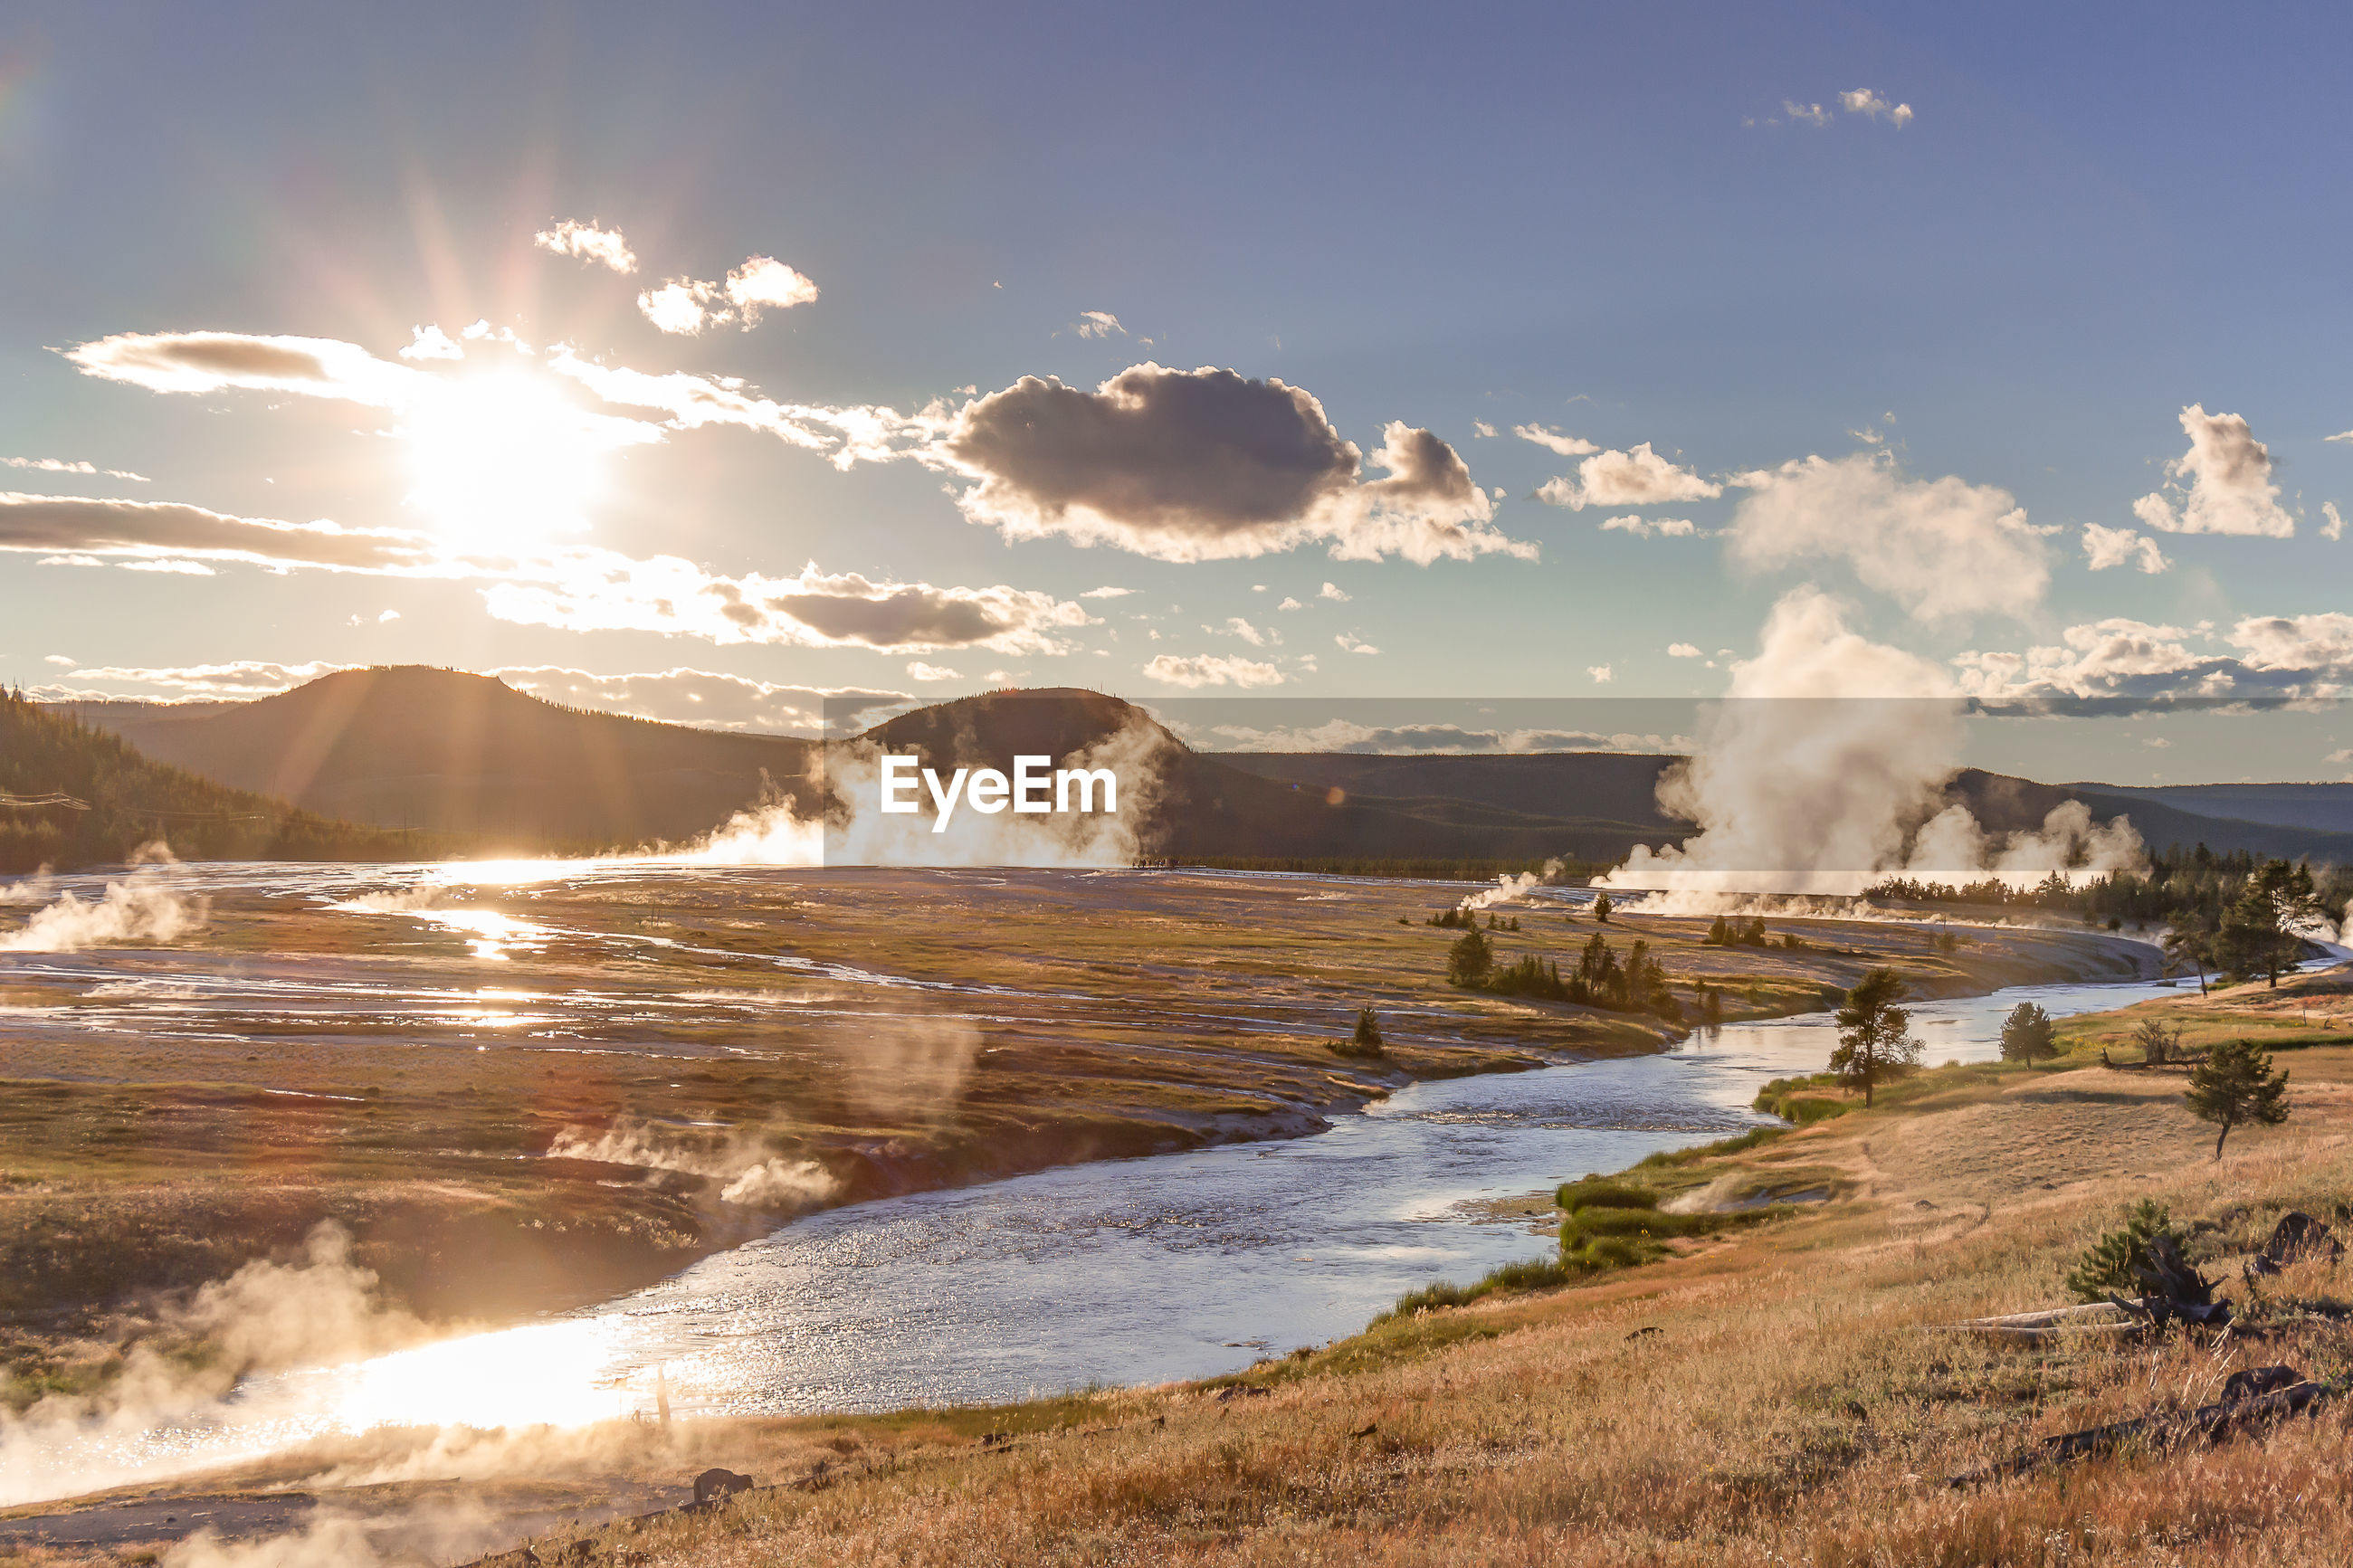 Steam rising from hot springs of midway geyser basin in yellowstone national park, wy, usa.